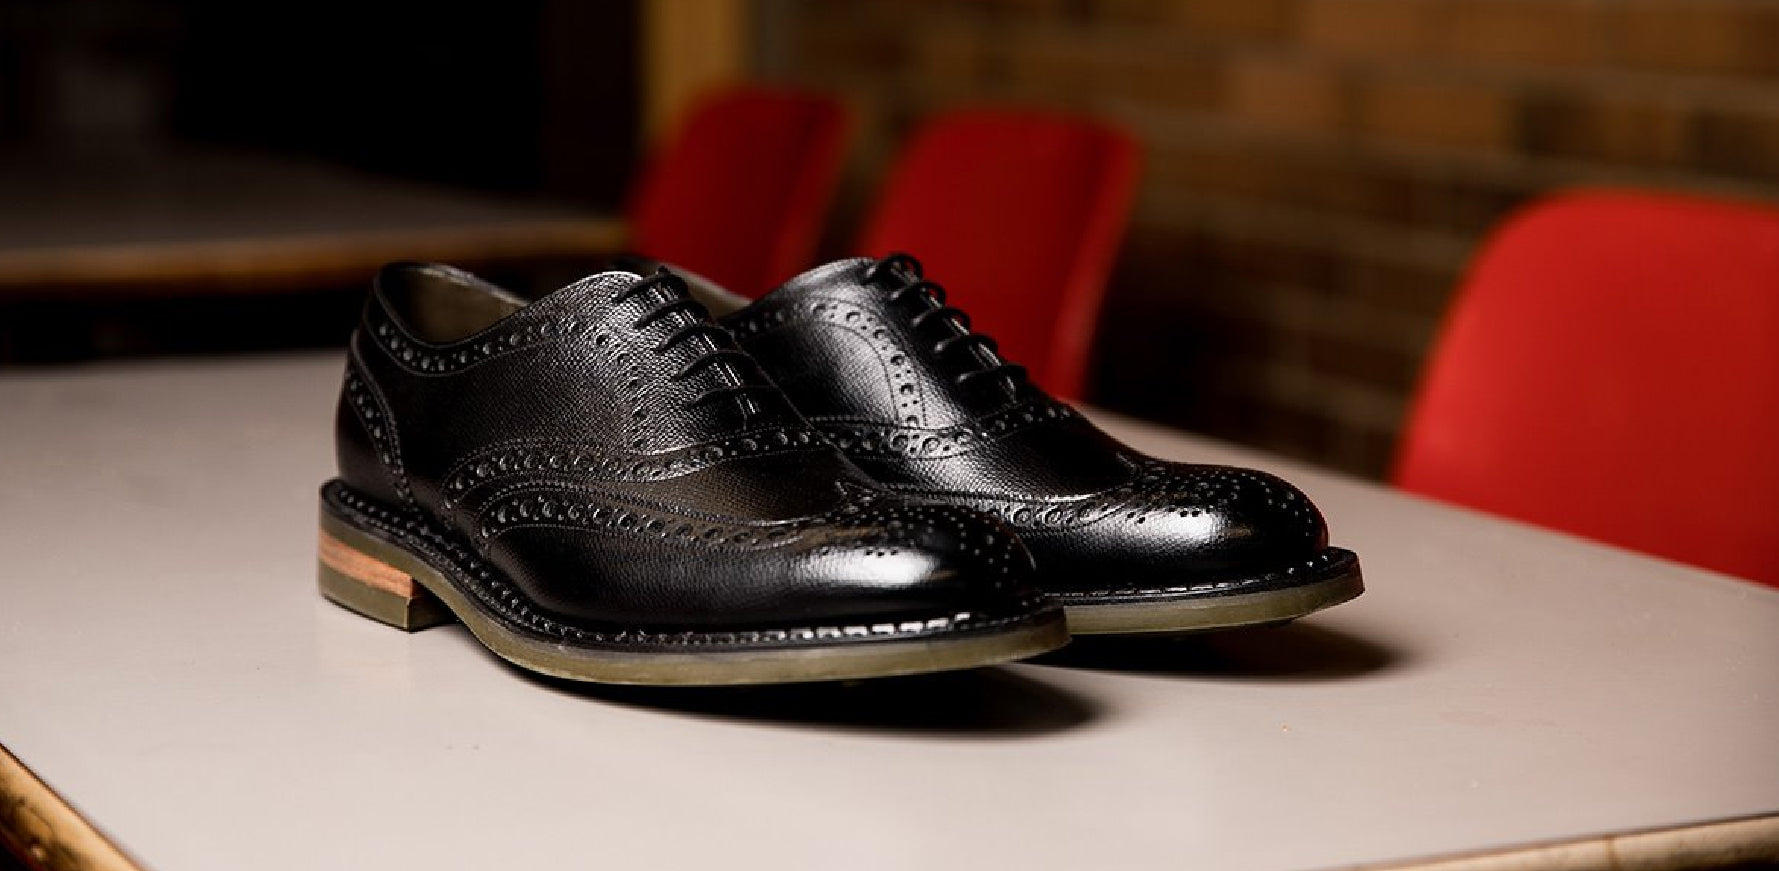 Station - Men's Black Leather Brogue Shoe By Barker